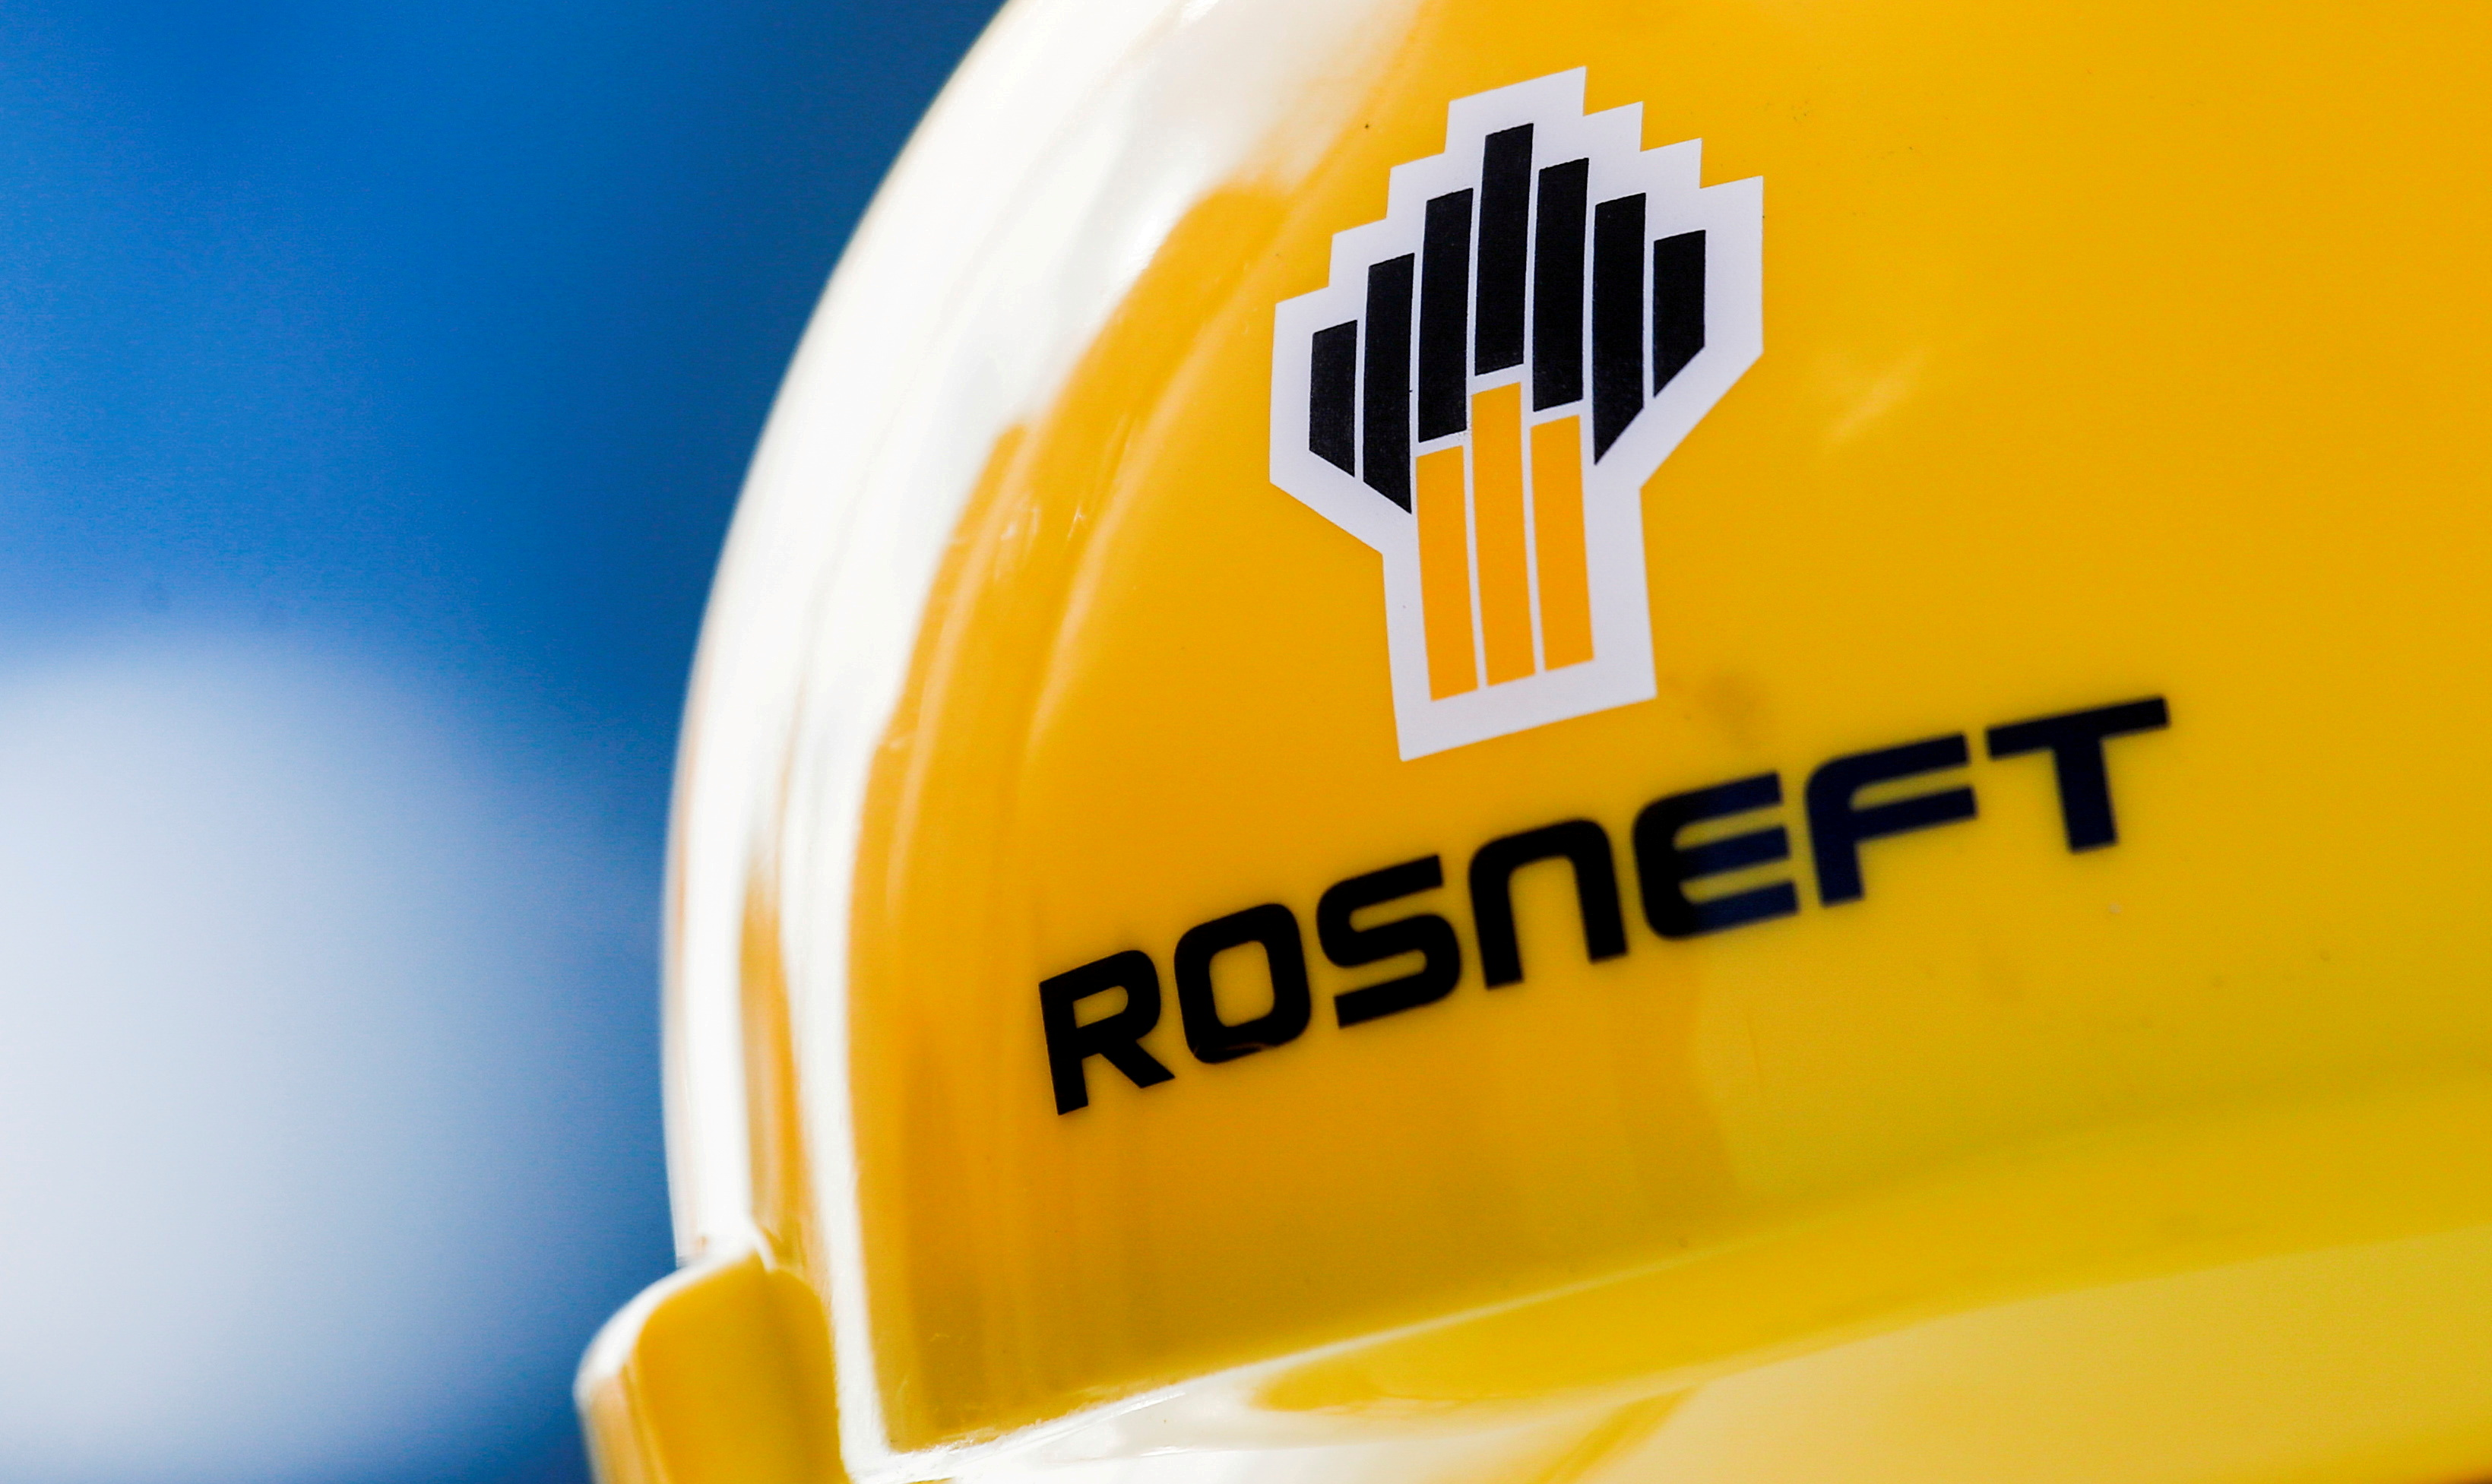 The Rosneft logo is pictured on a safety helmet in Vung Tau, Vietnam April 27, 2018. Picture taken April 27, 2018. REUTERS/Maxim Shemetov